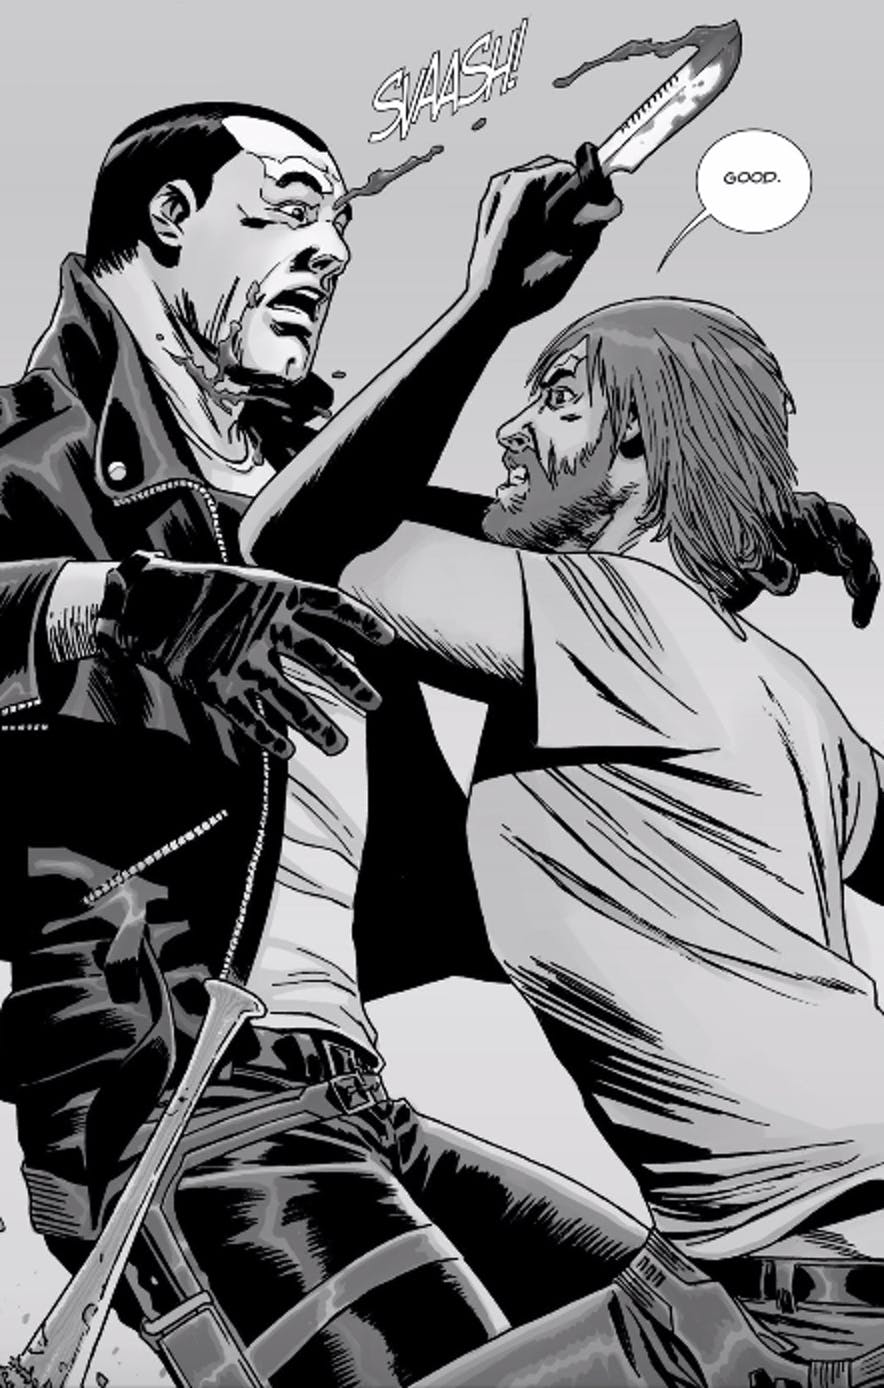 Rick slashes Negan's throat in 'The Walking Dead' Issue 21 from Image Comics